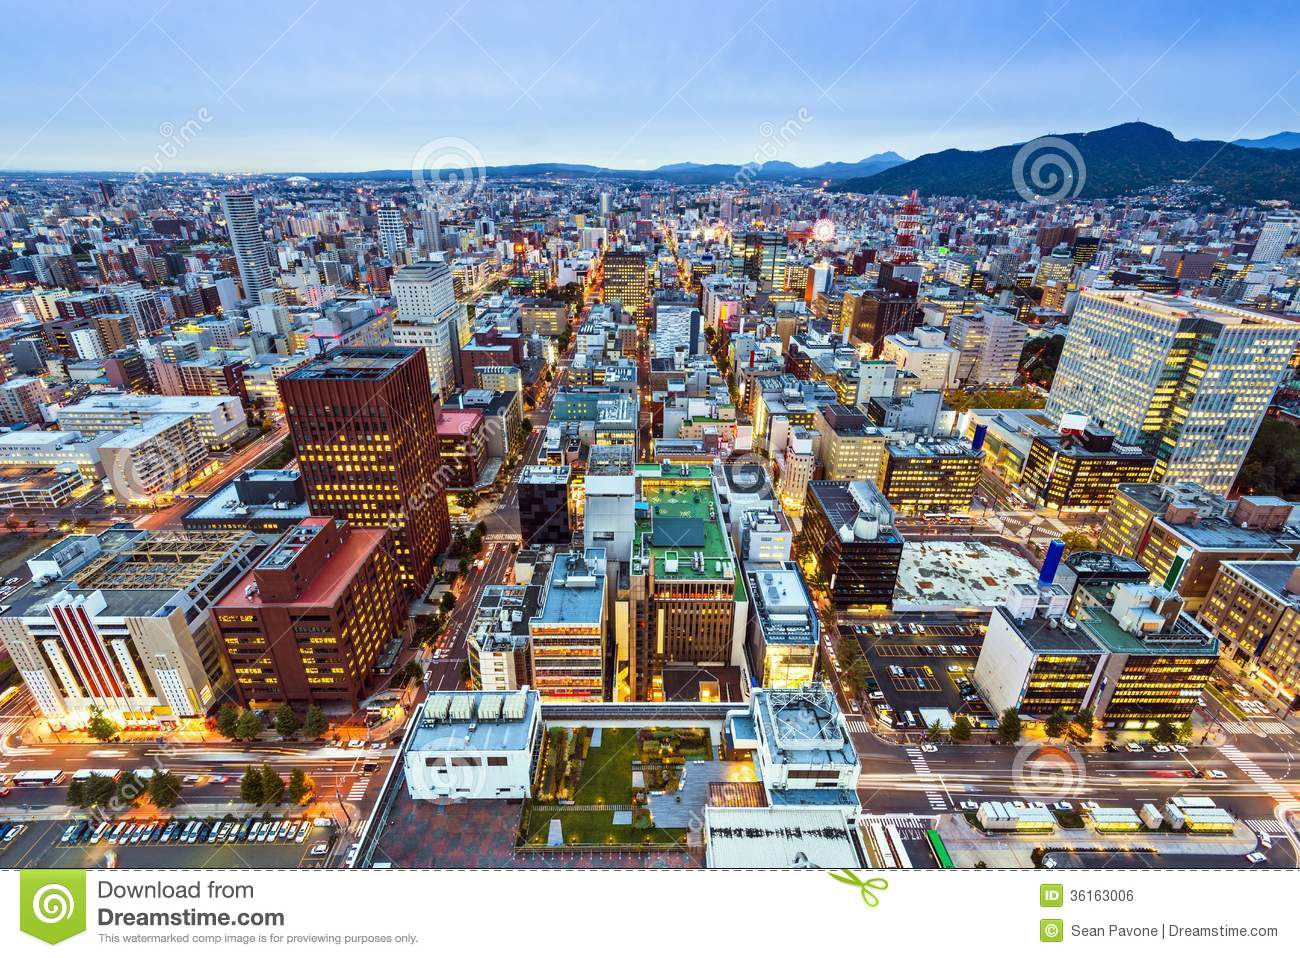 Sapporo Japan Royalty Free Stock Image - Image: 36163006